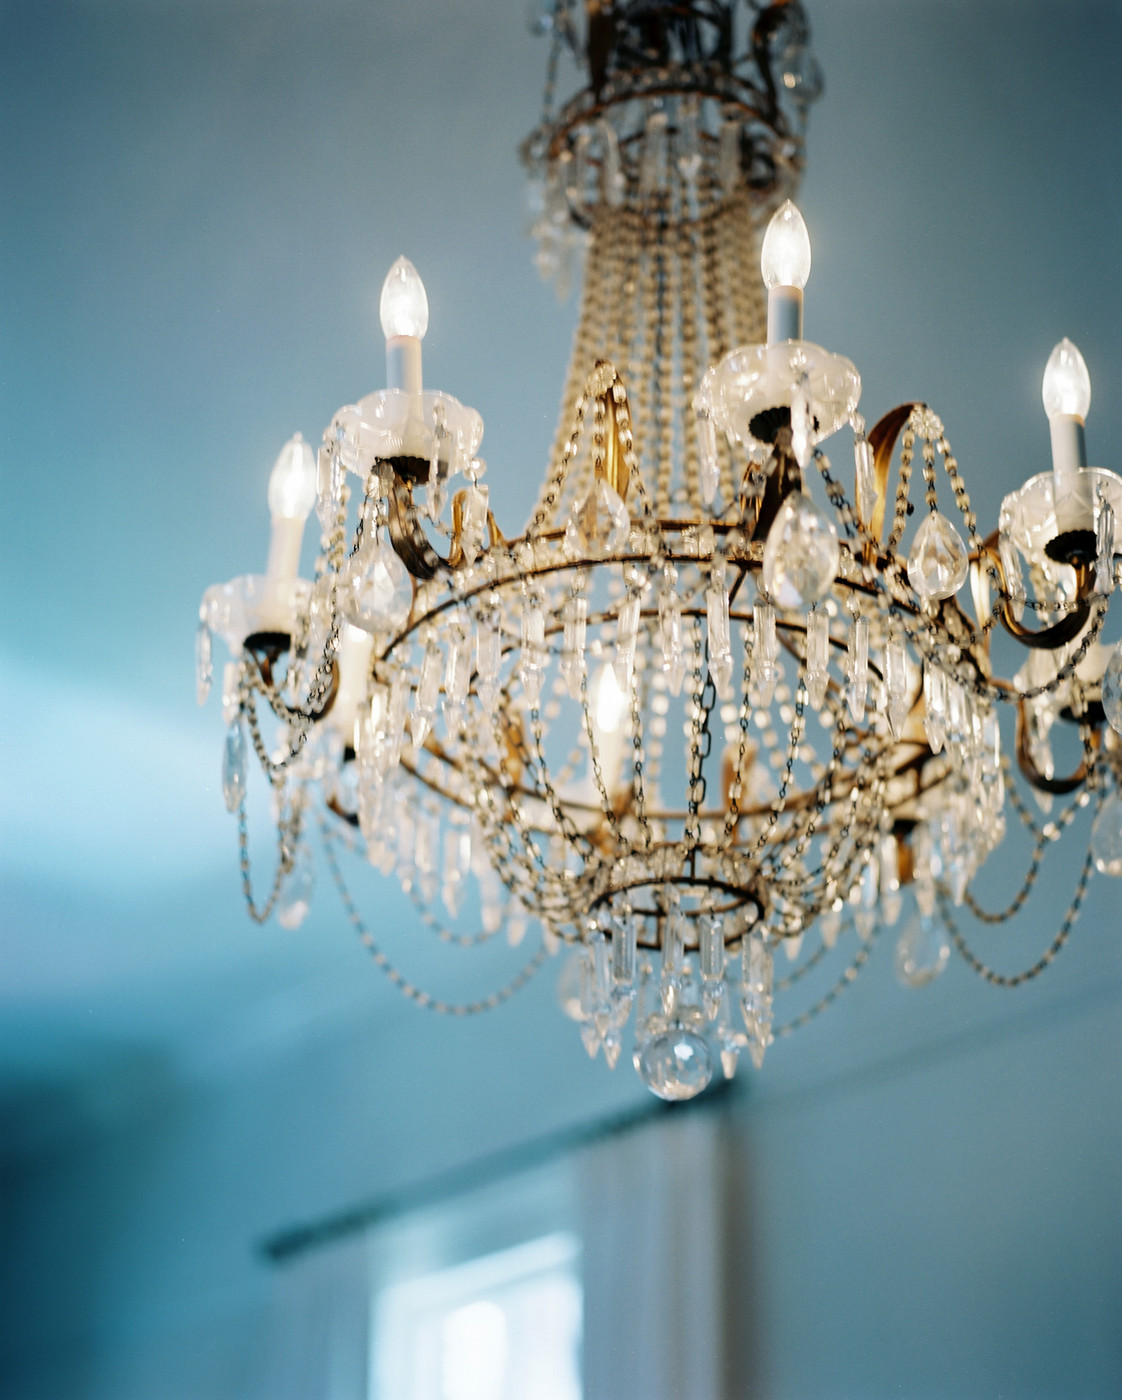 Antique chandelier photos design ideas remodel and for Chandelier mural antique